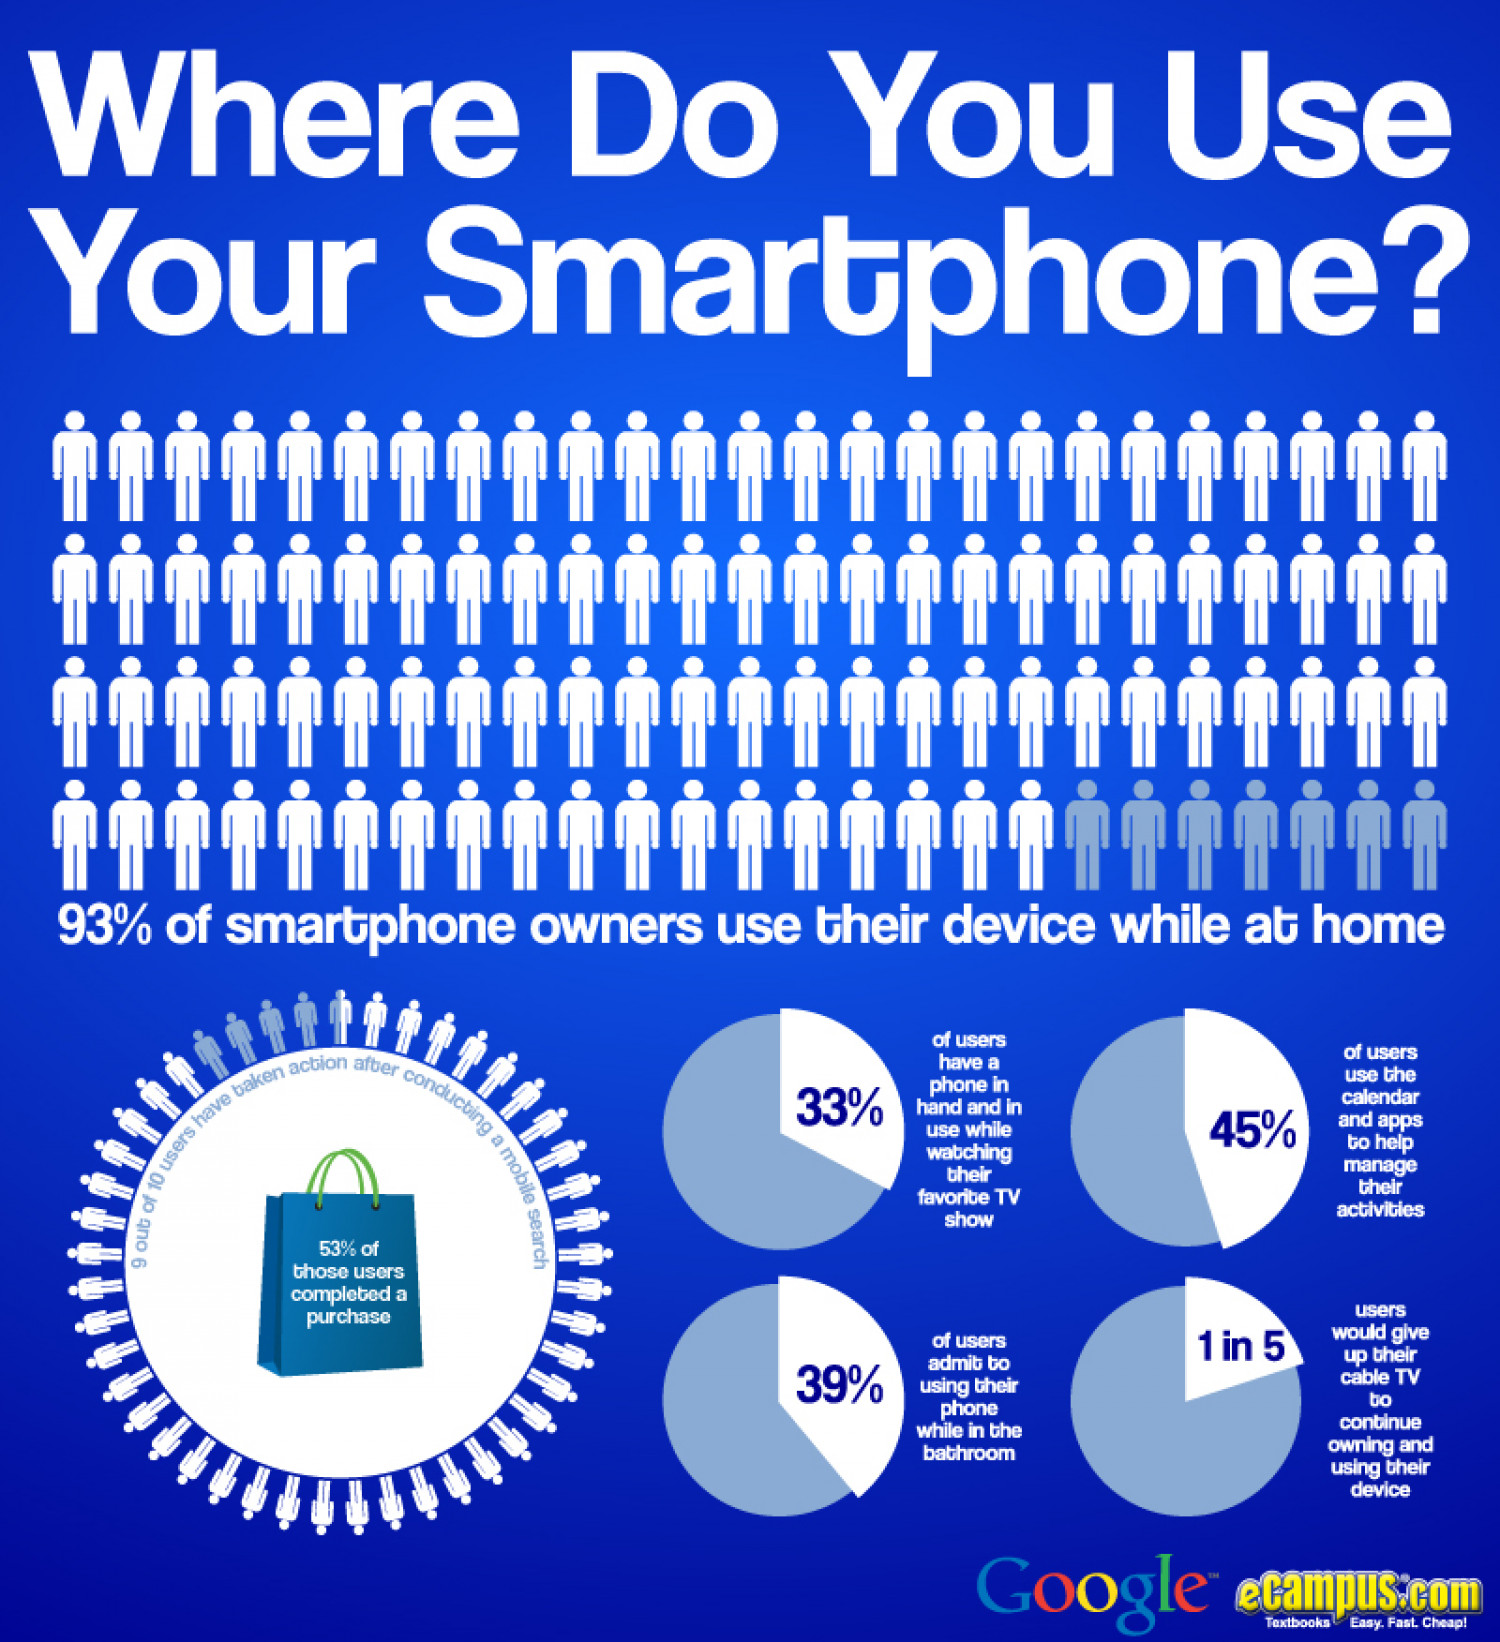 Where Do You Use Your Smartphone? Infographic